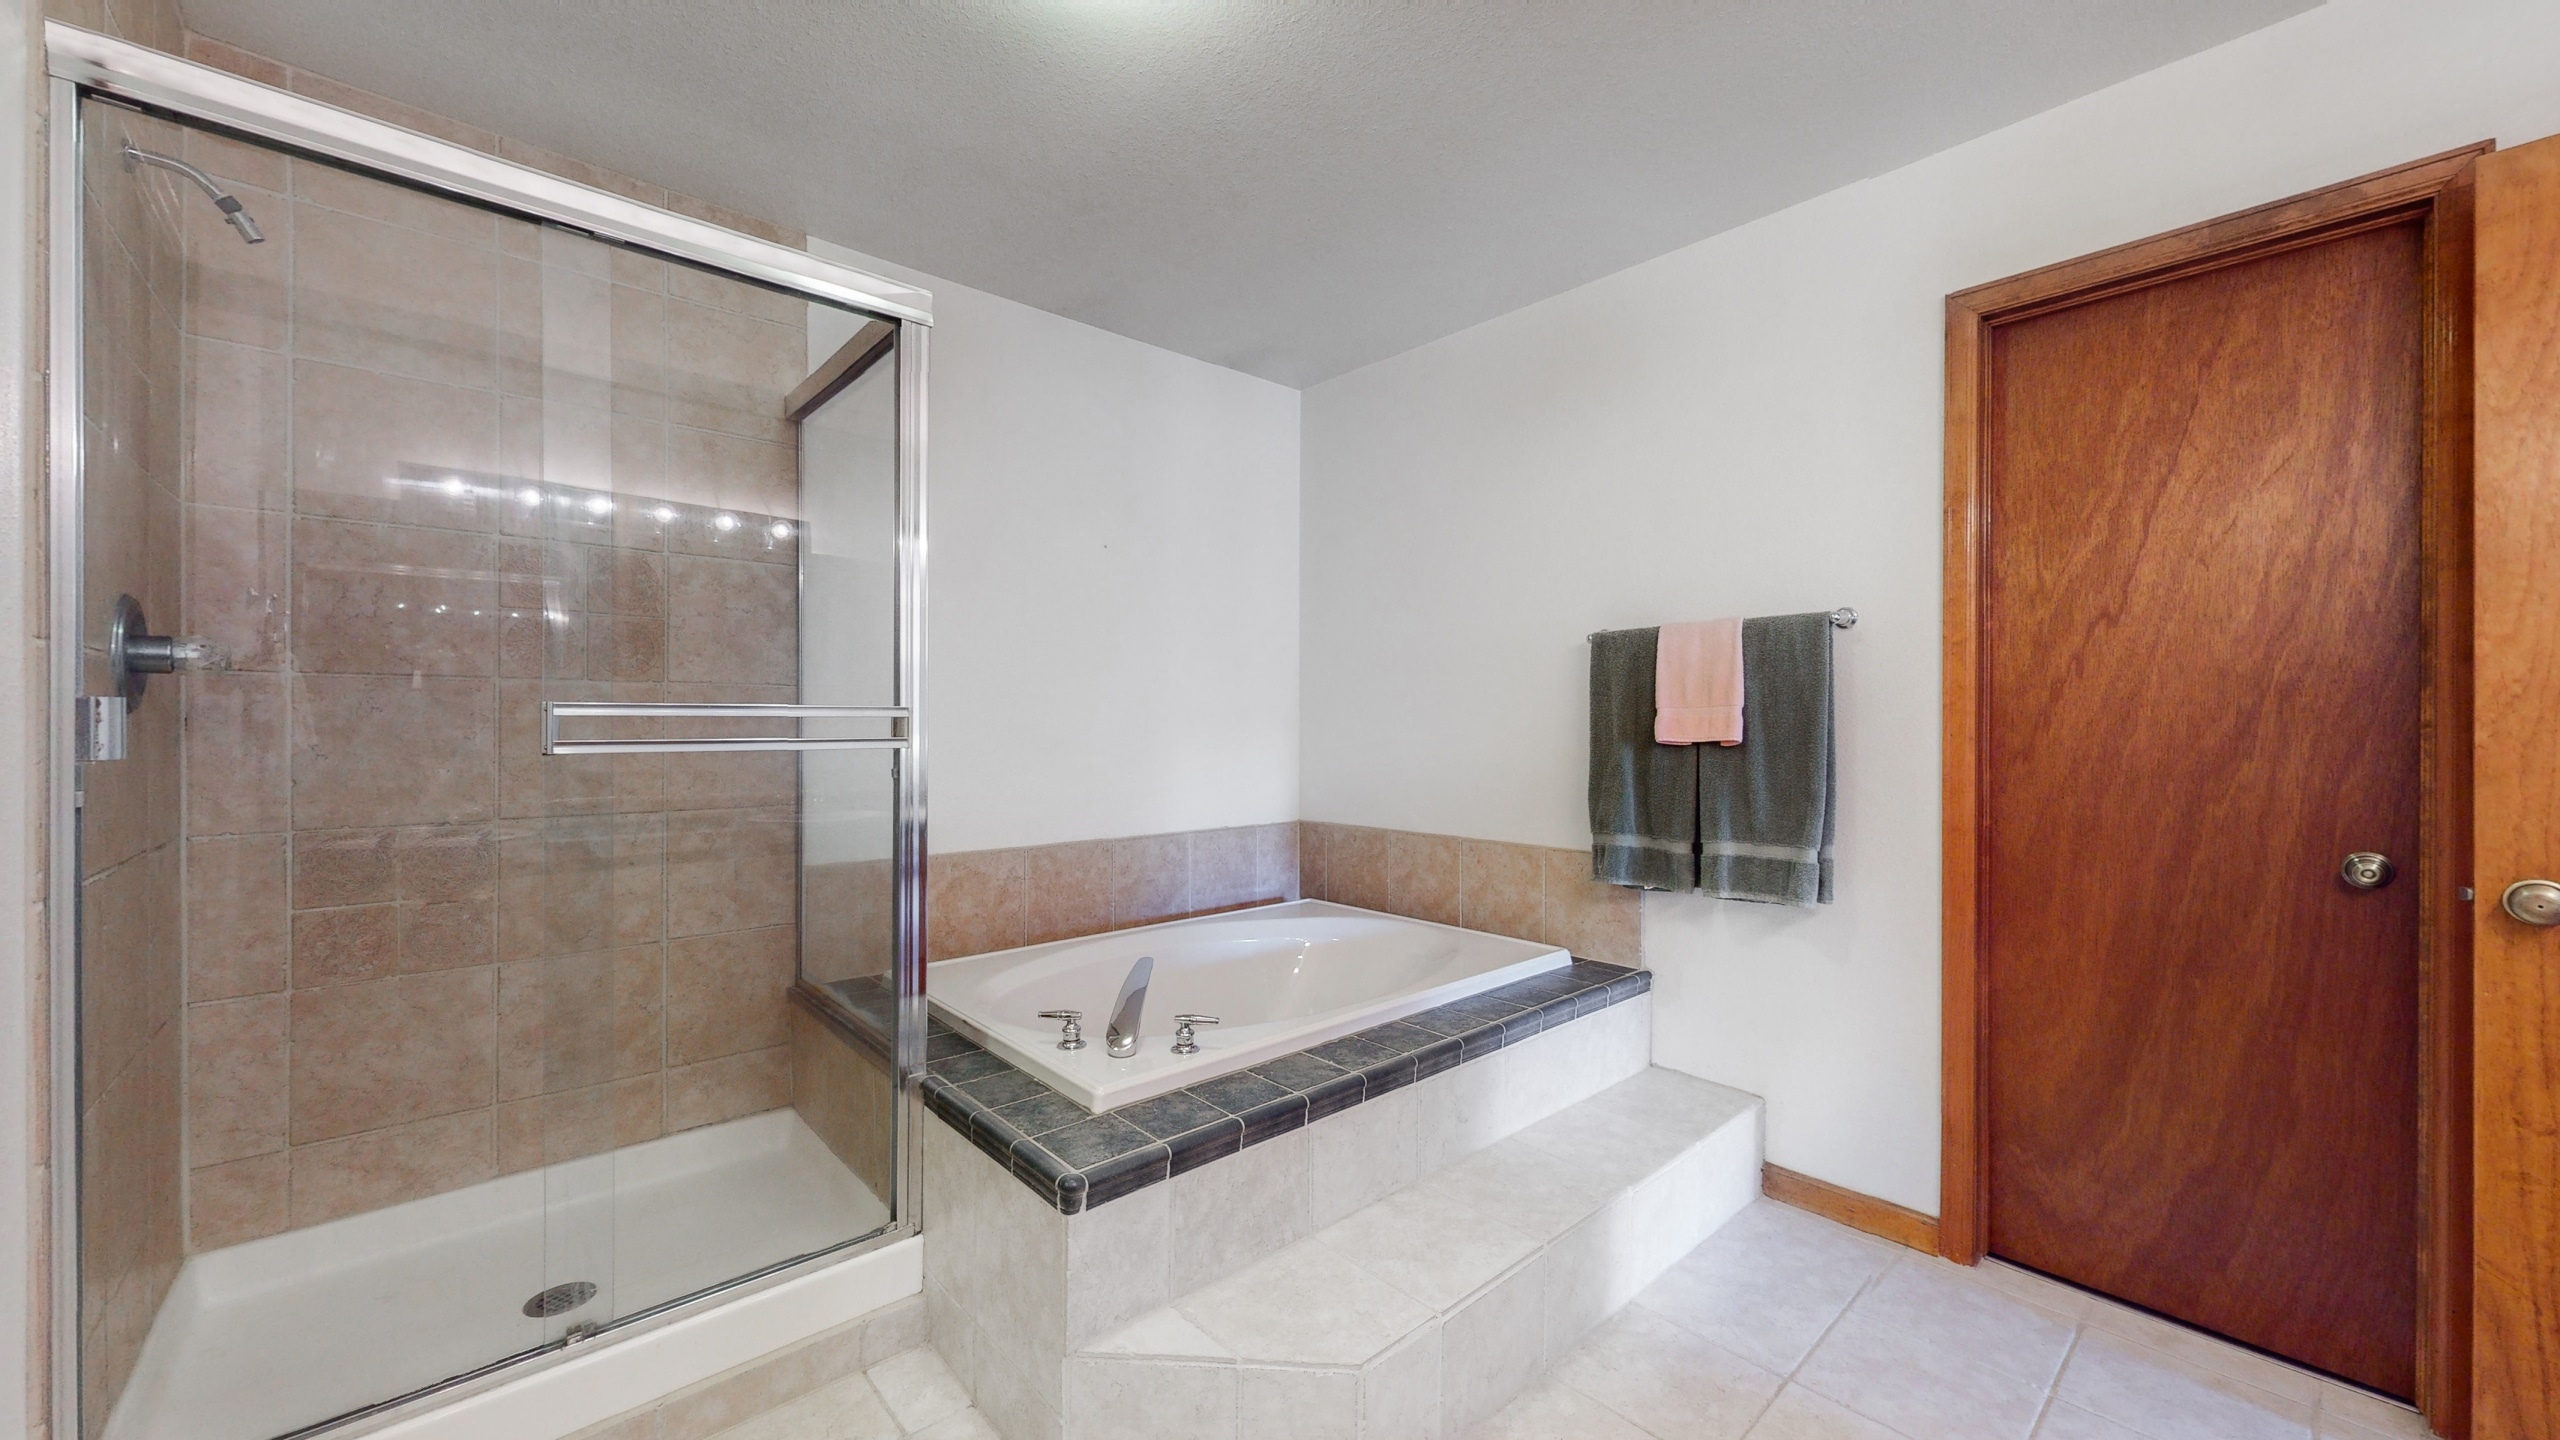 Five piece bathroom with shower and tub